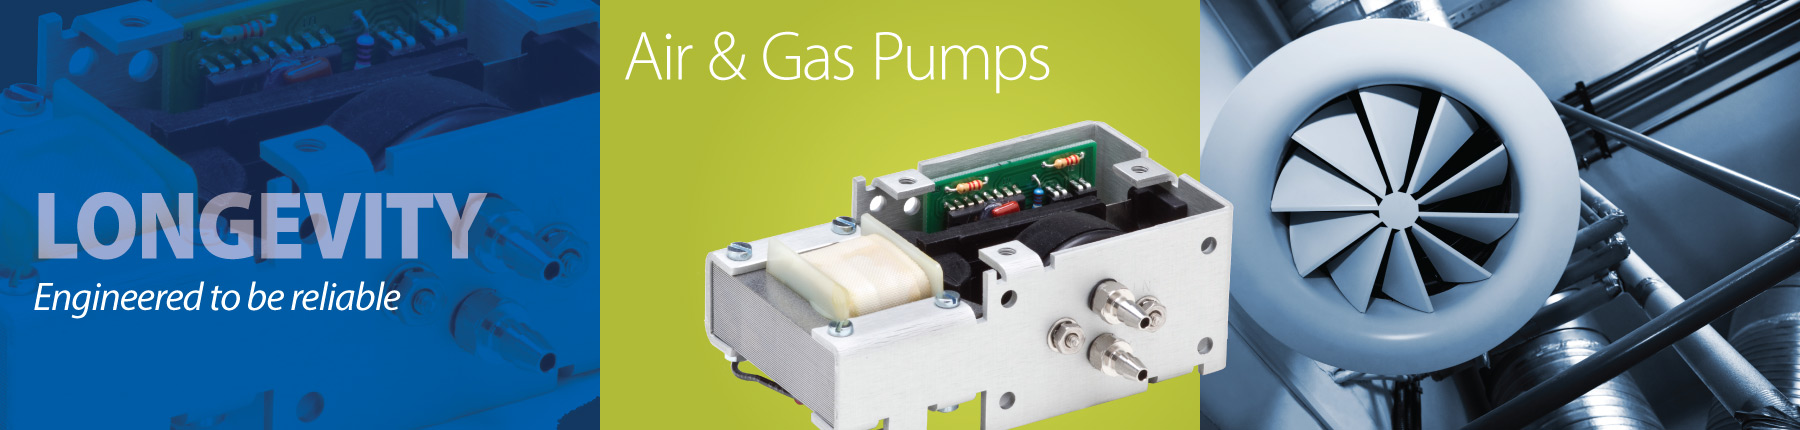 Home-Slider-Air-&-Gas-Pumps